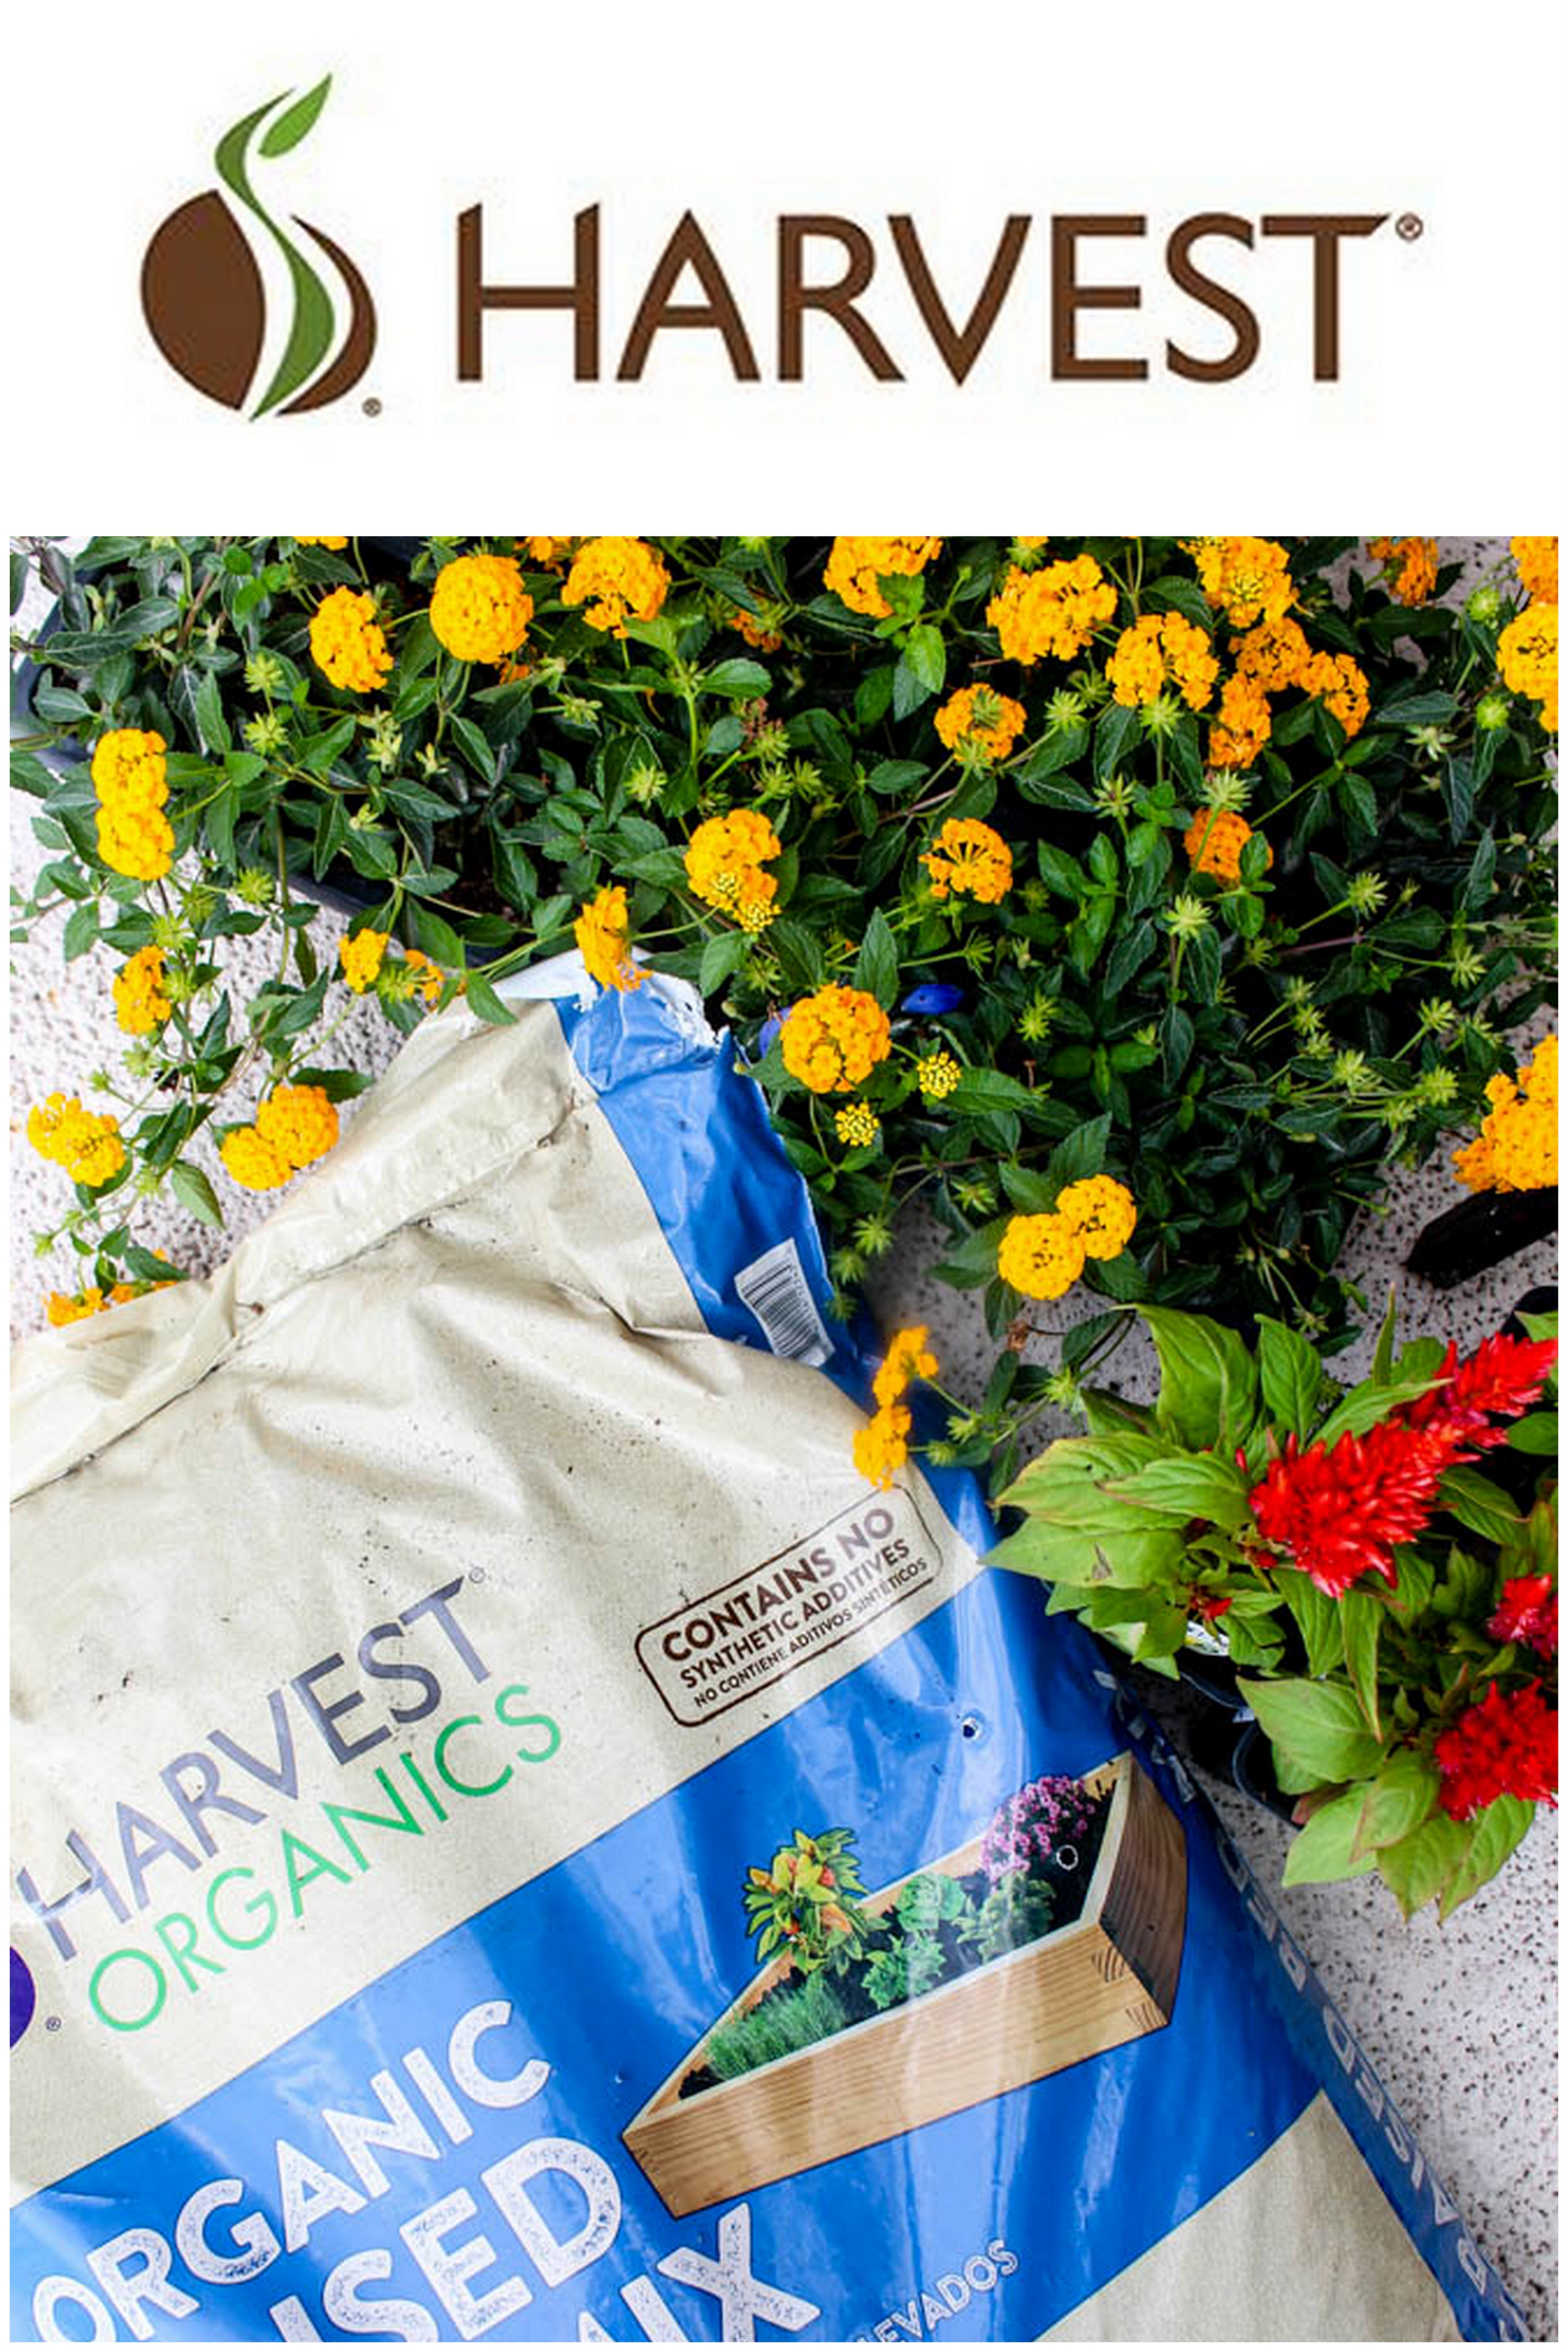 Diy raised garden boxes with organic soil within the grove for Harvest organic soil